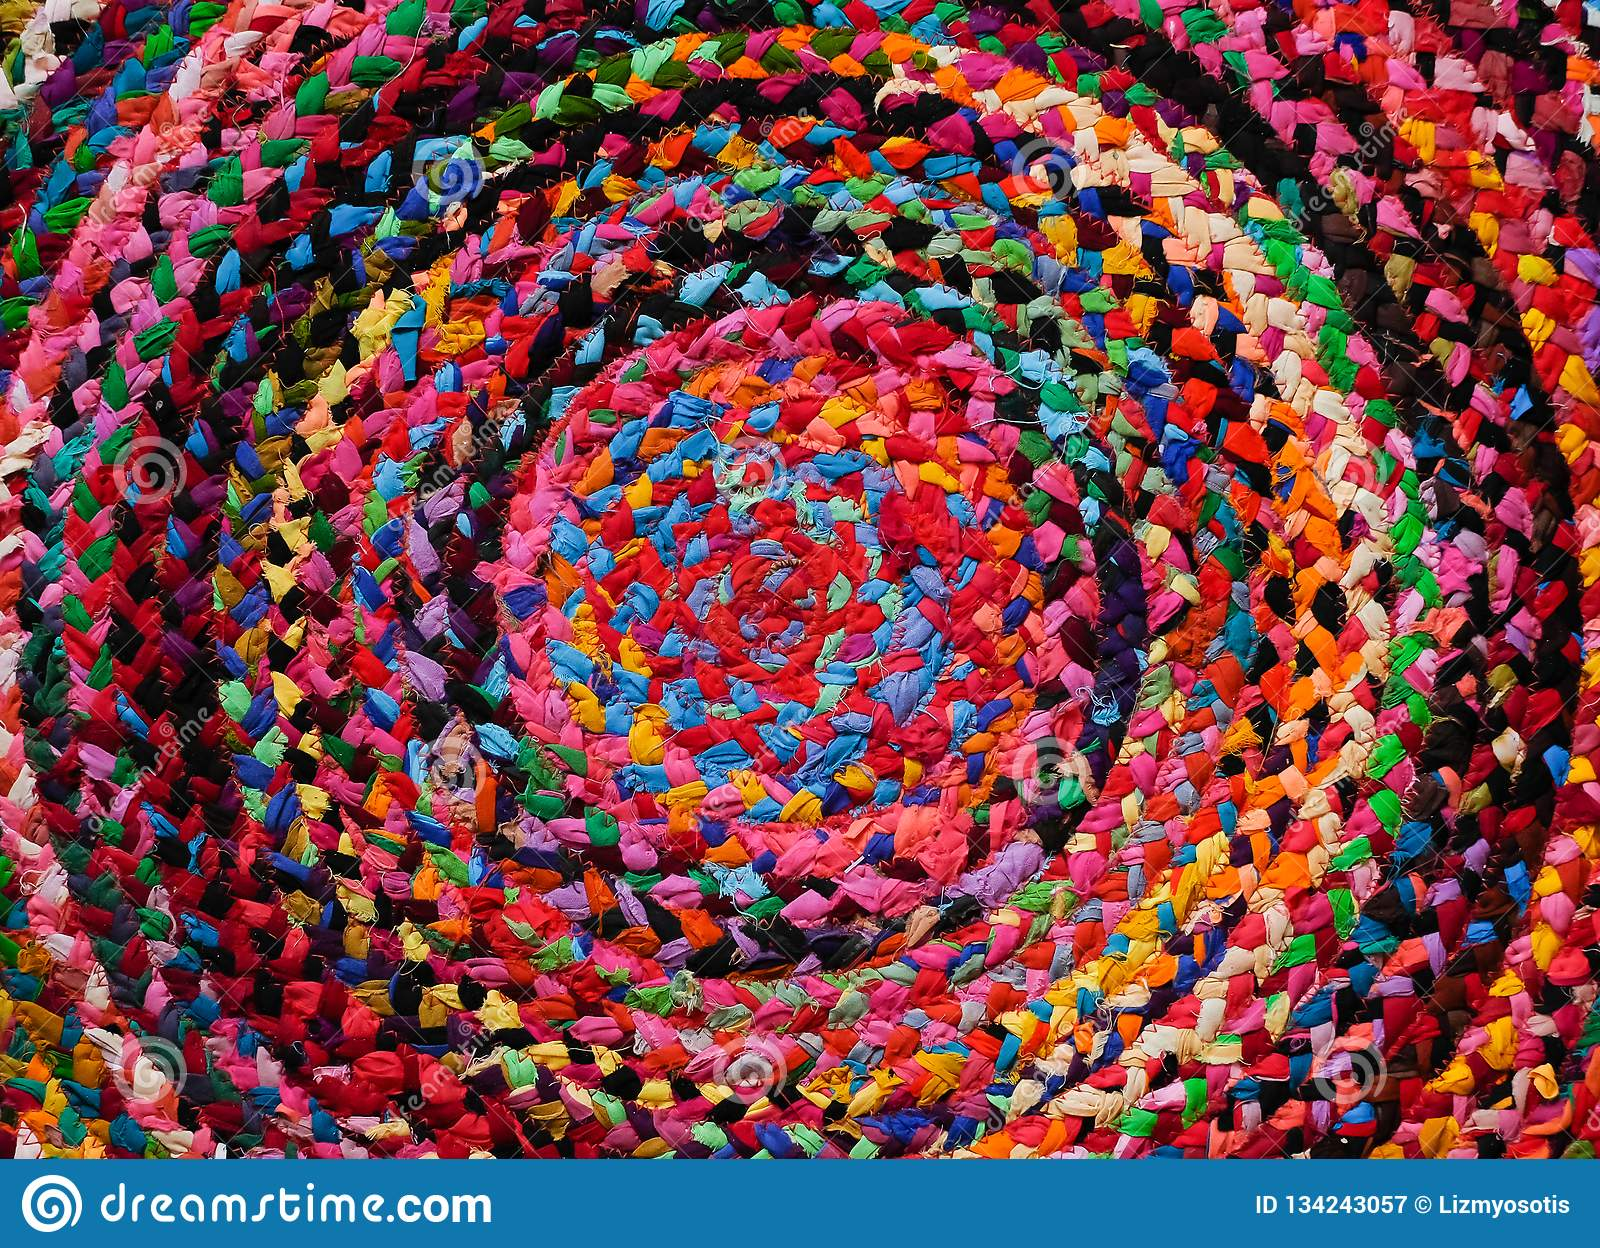 Colorful round african peruvian style rug or woven carpet surface close up. Ethnic and tribal motives. Bright accent in